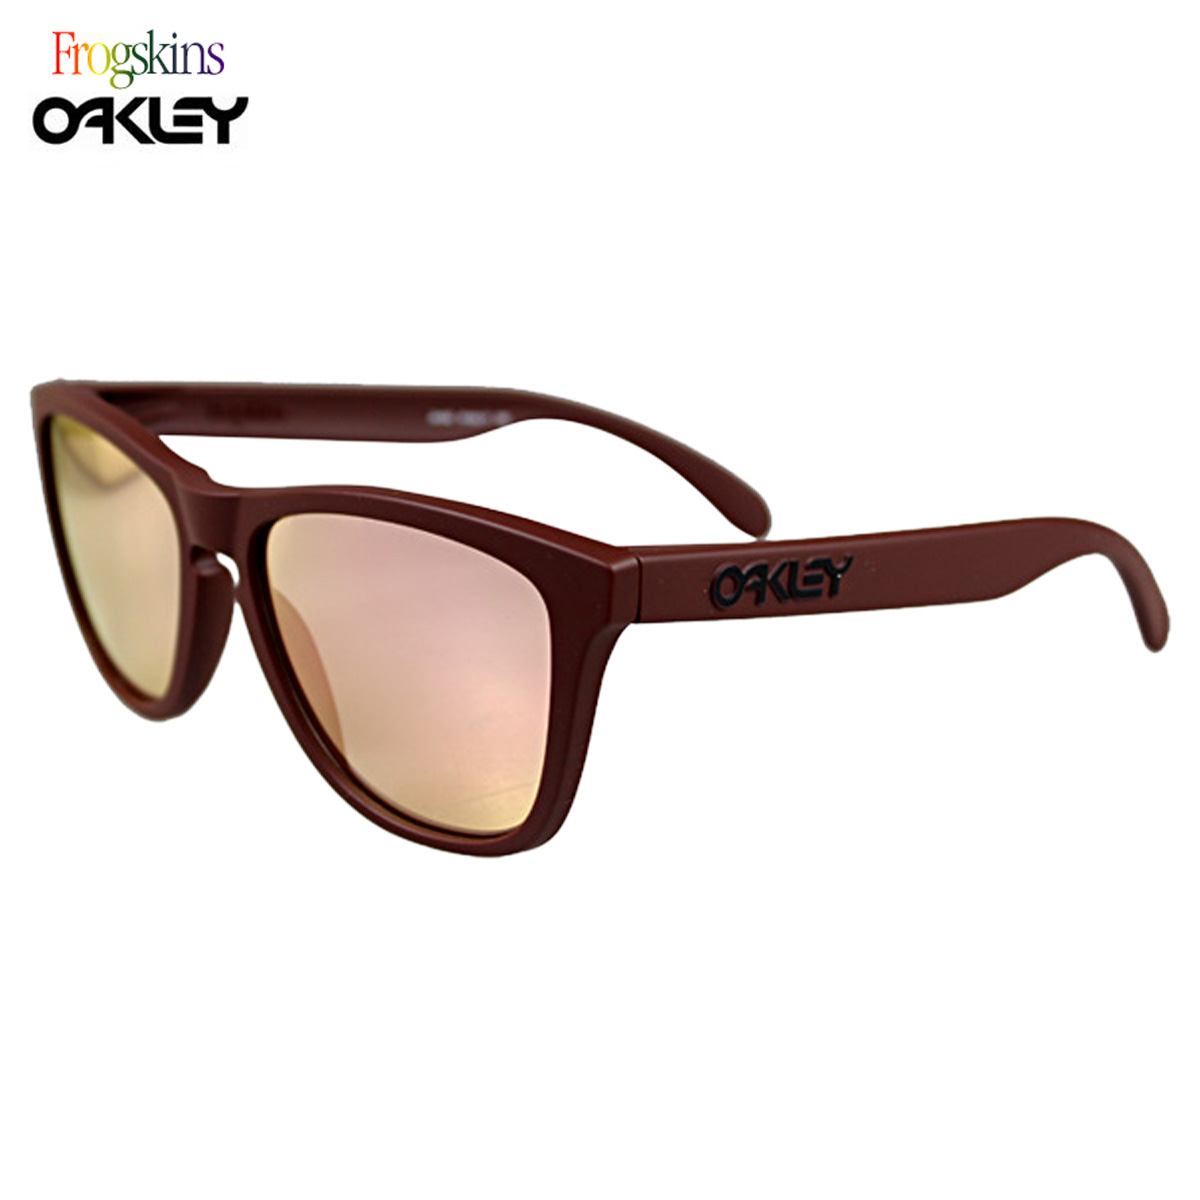 oakley sunglasses mens frogskin red